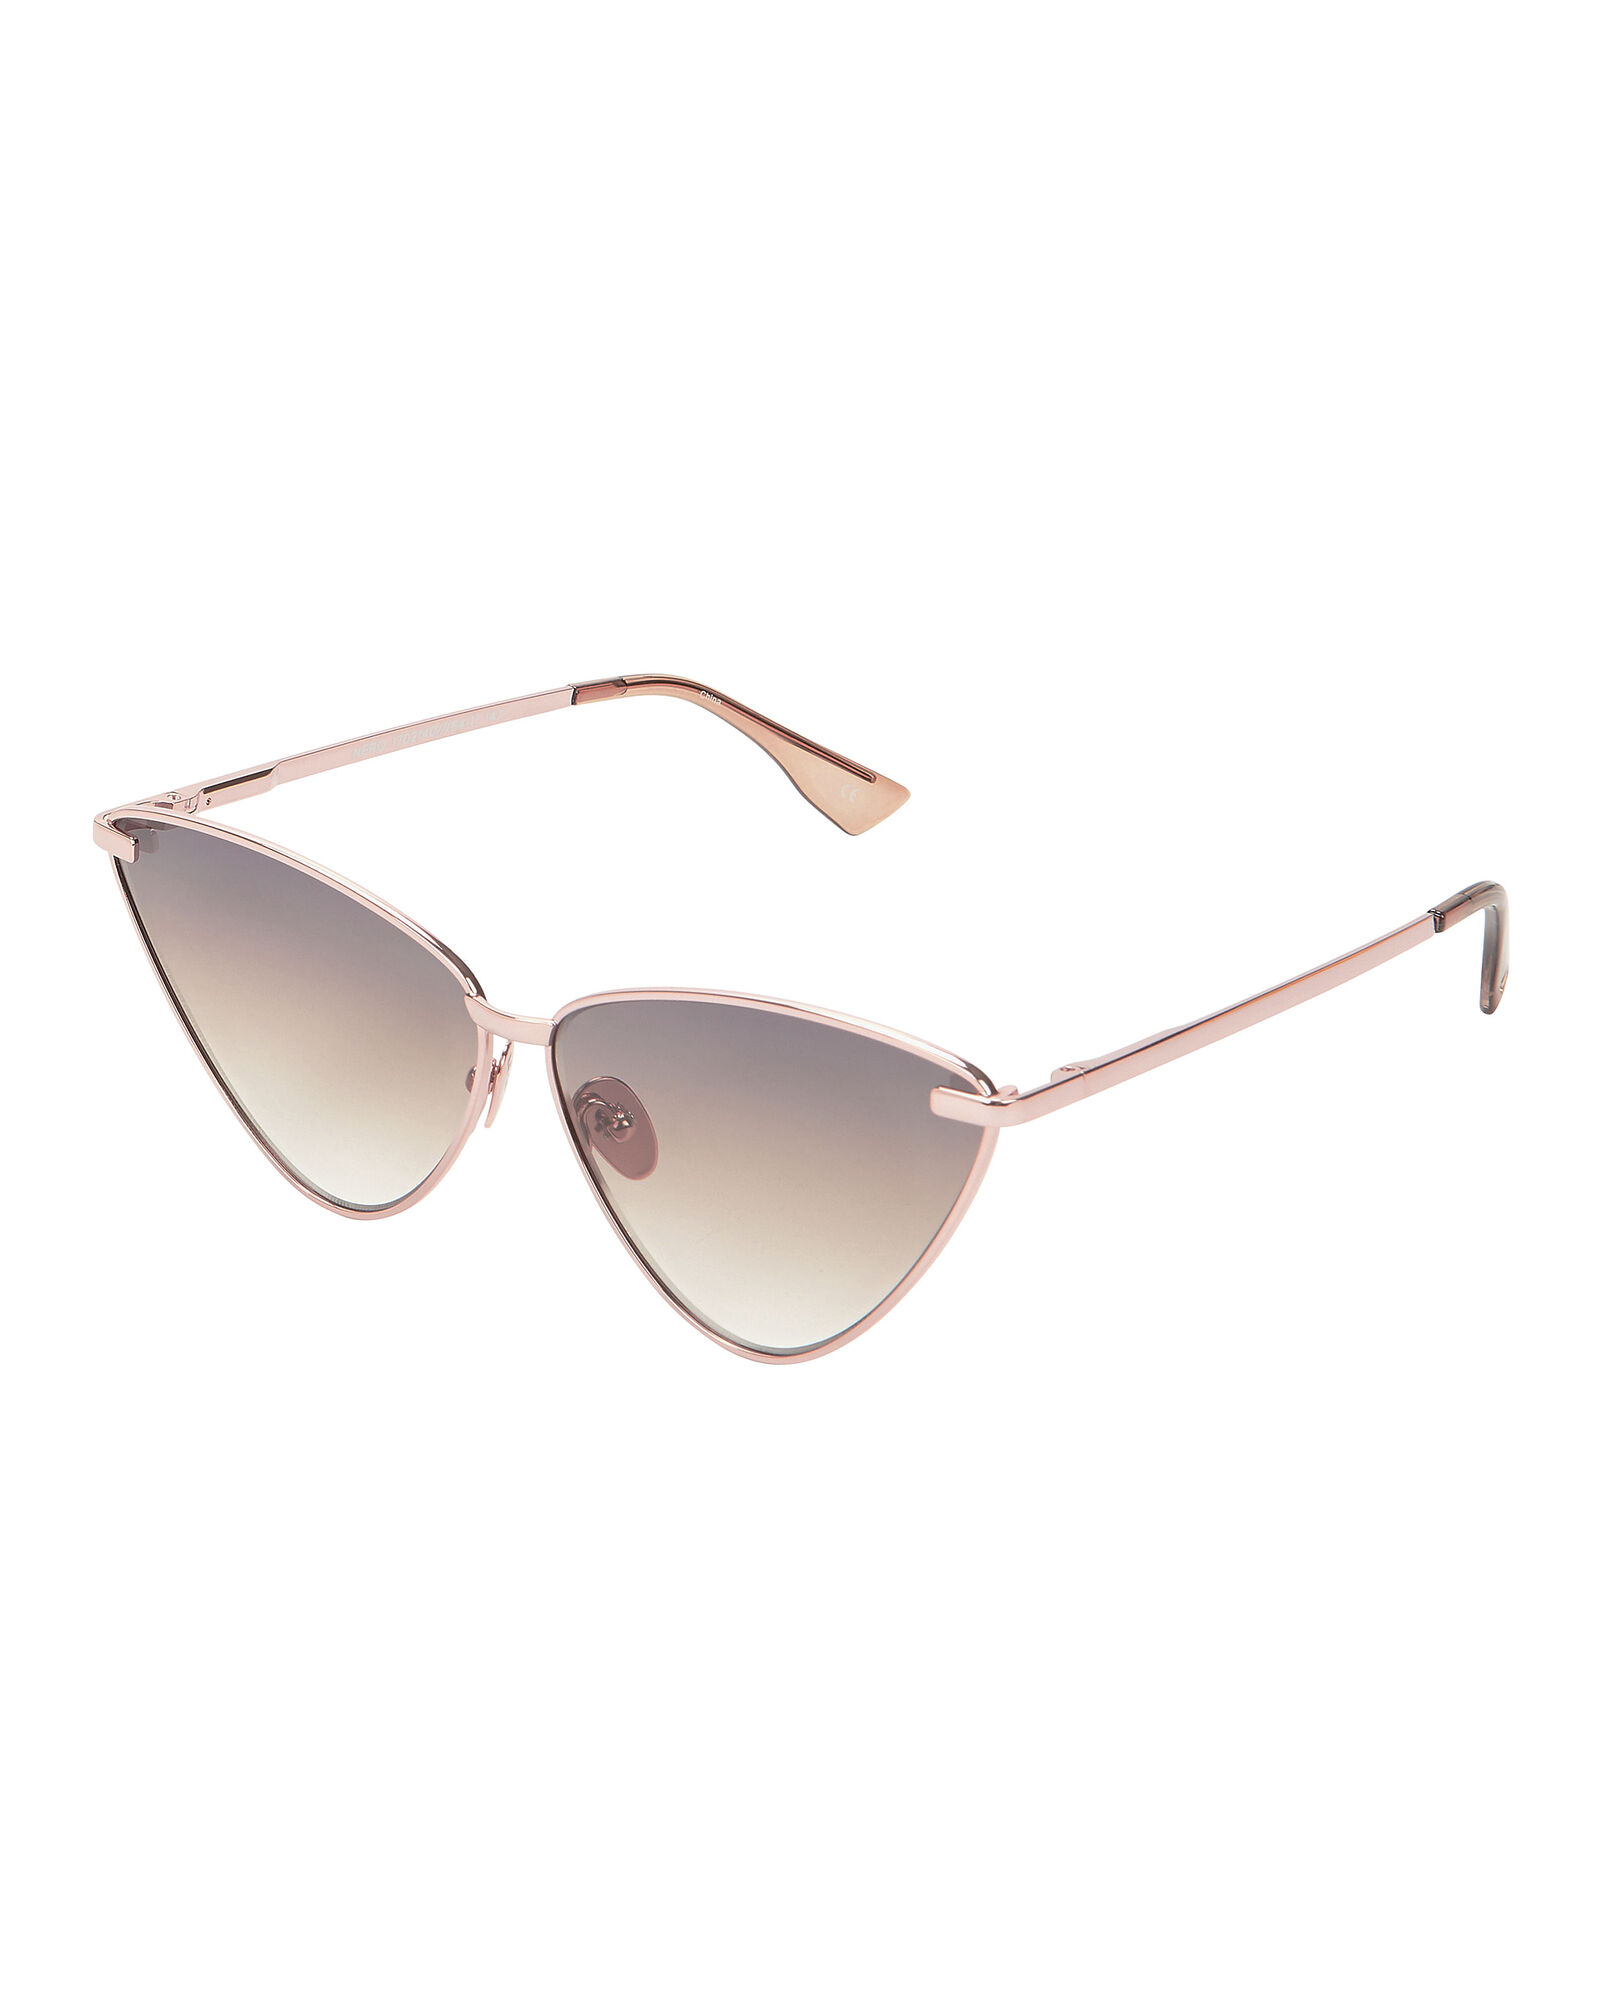 Nero Sunglasses, ROSE, hi-res